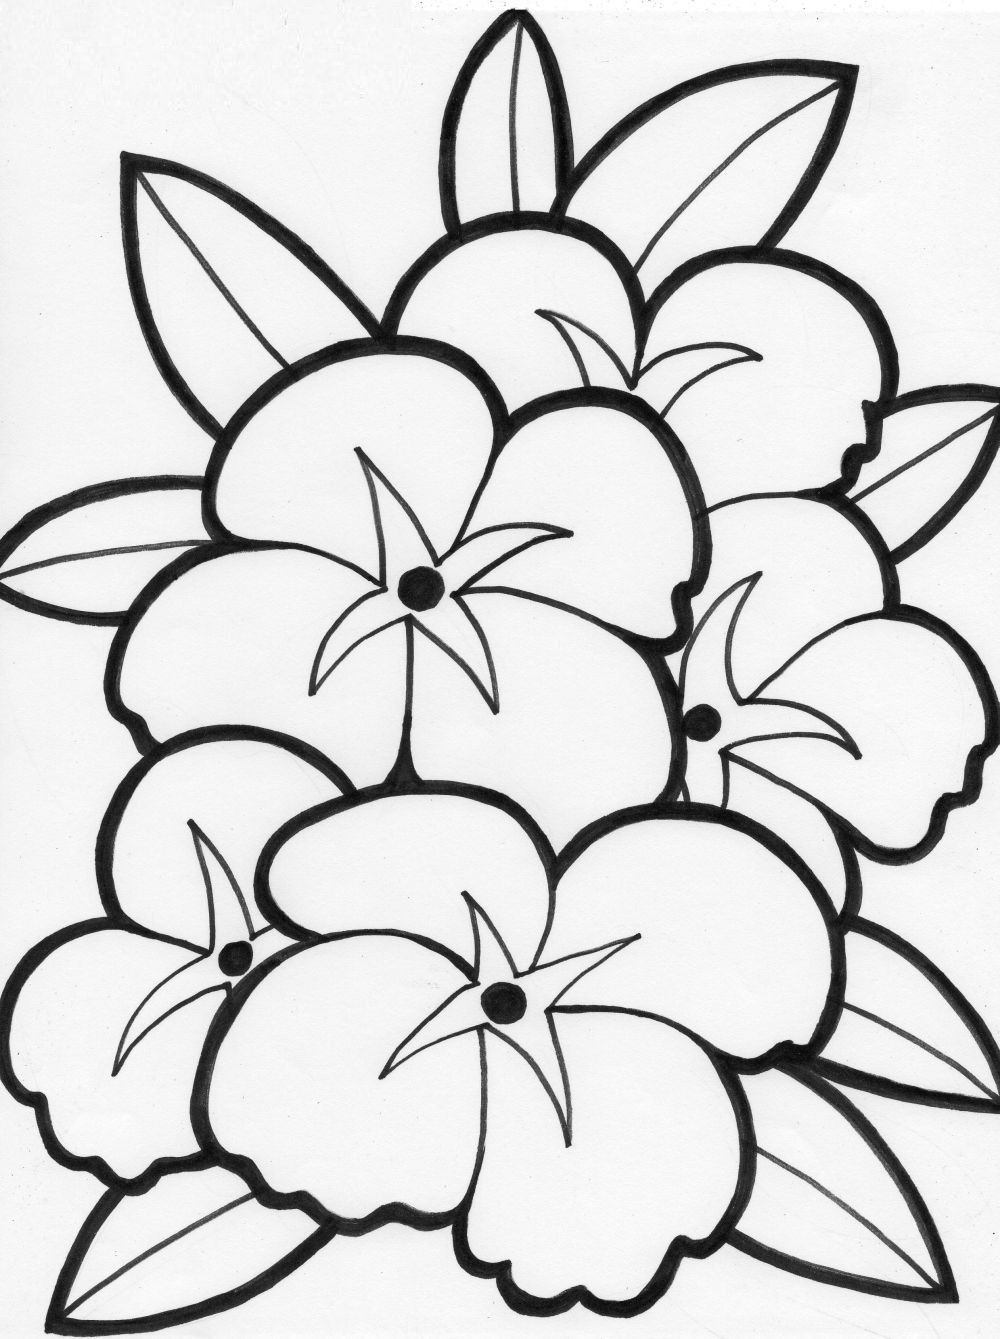 This is an image of Transformative Printable Coloring Pages for Teens